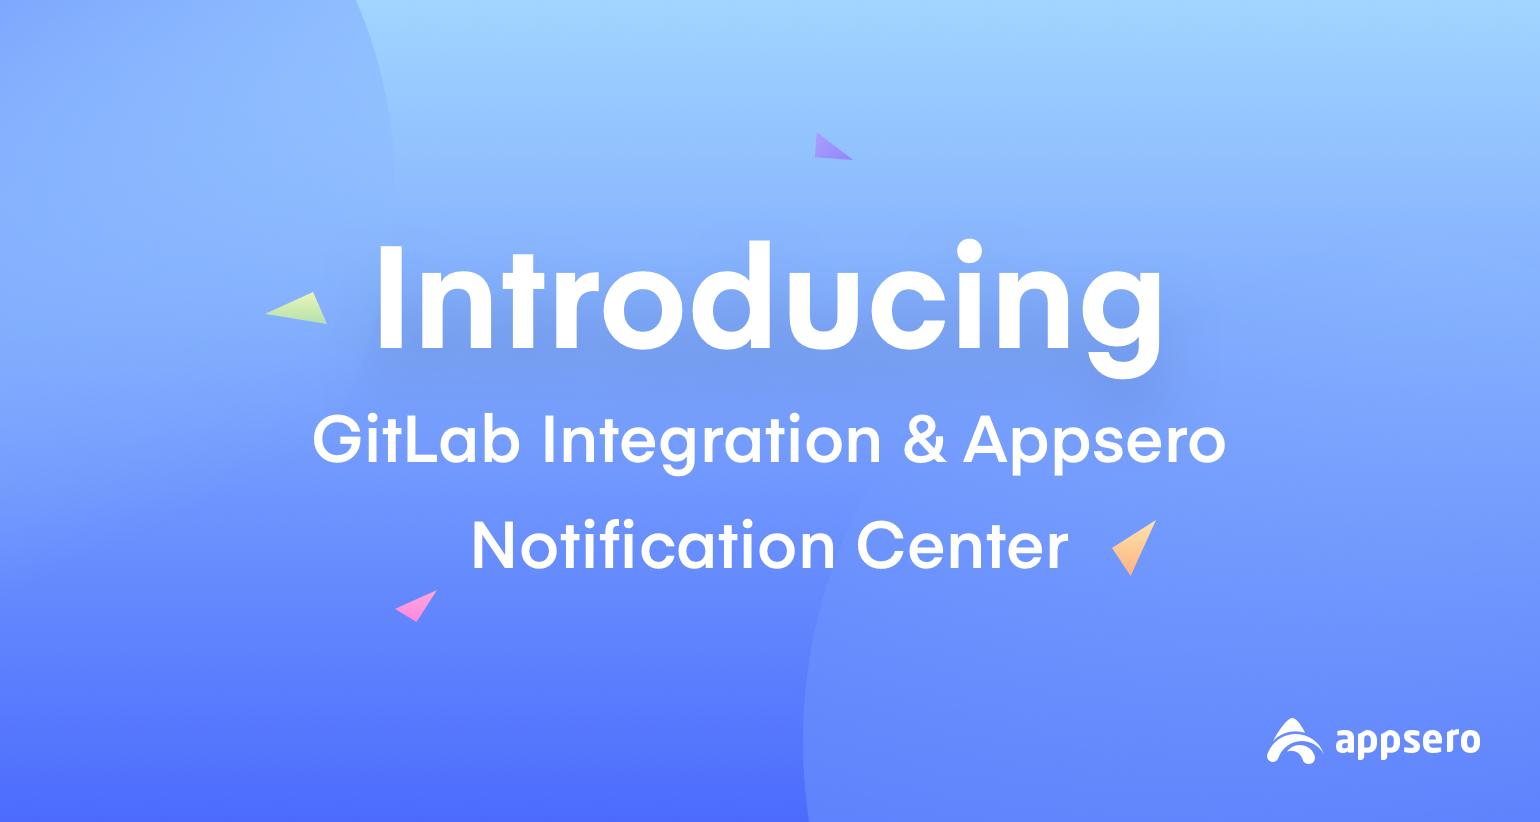 Introducing GitLab Integration & Appsero Notifications